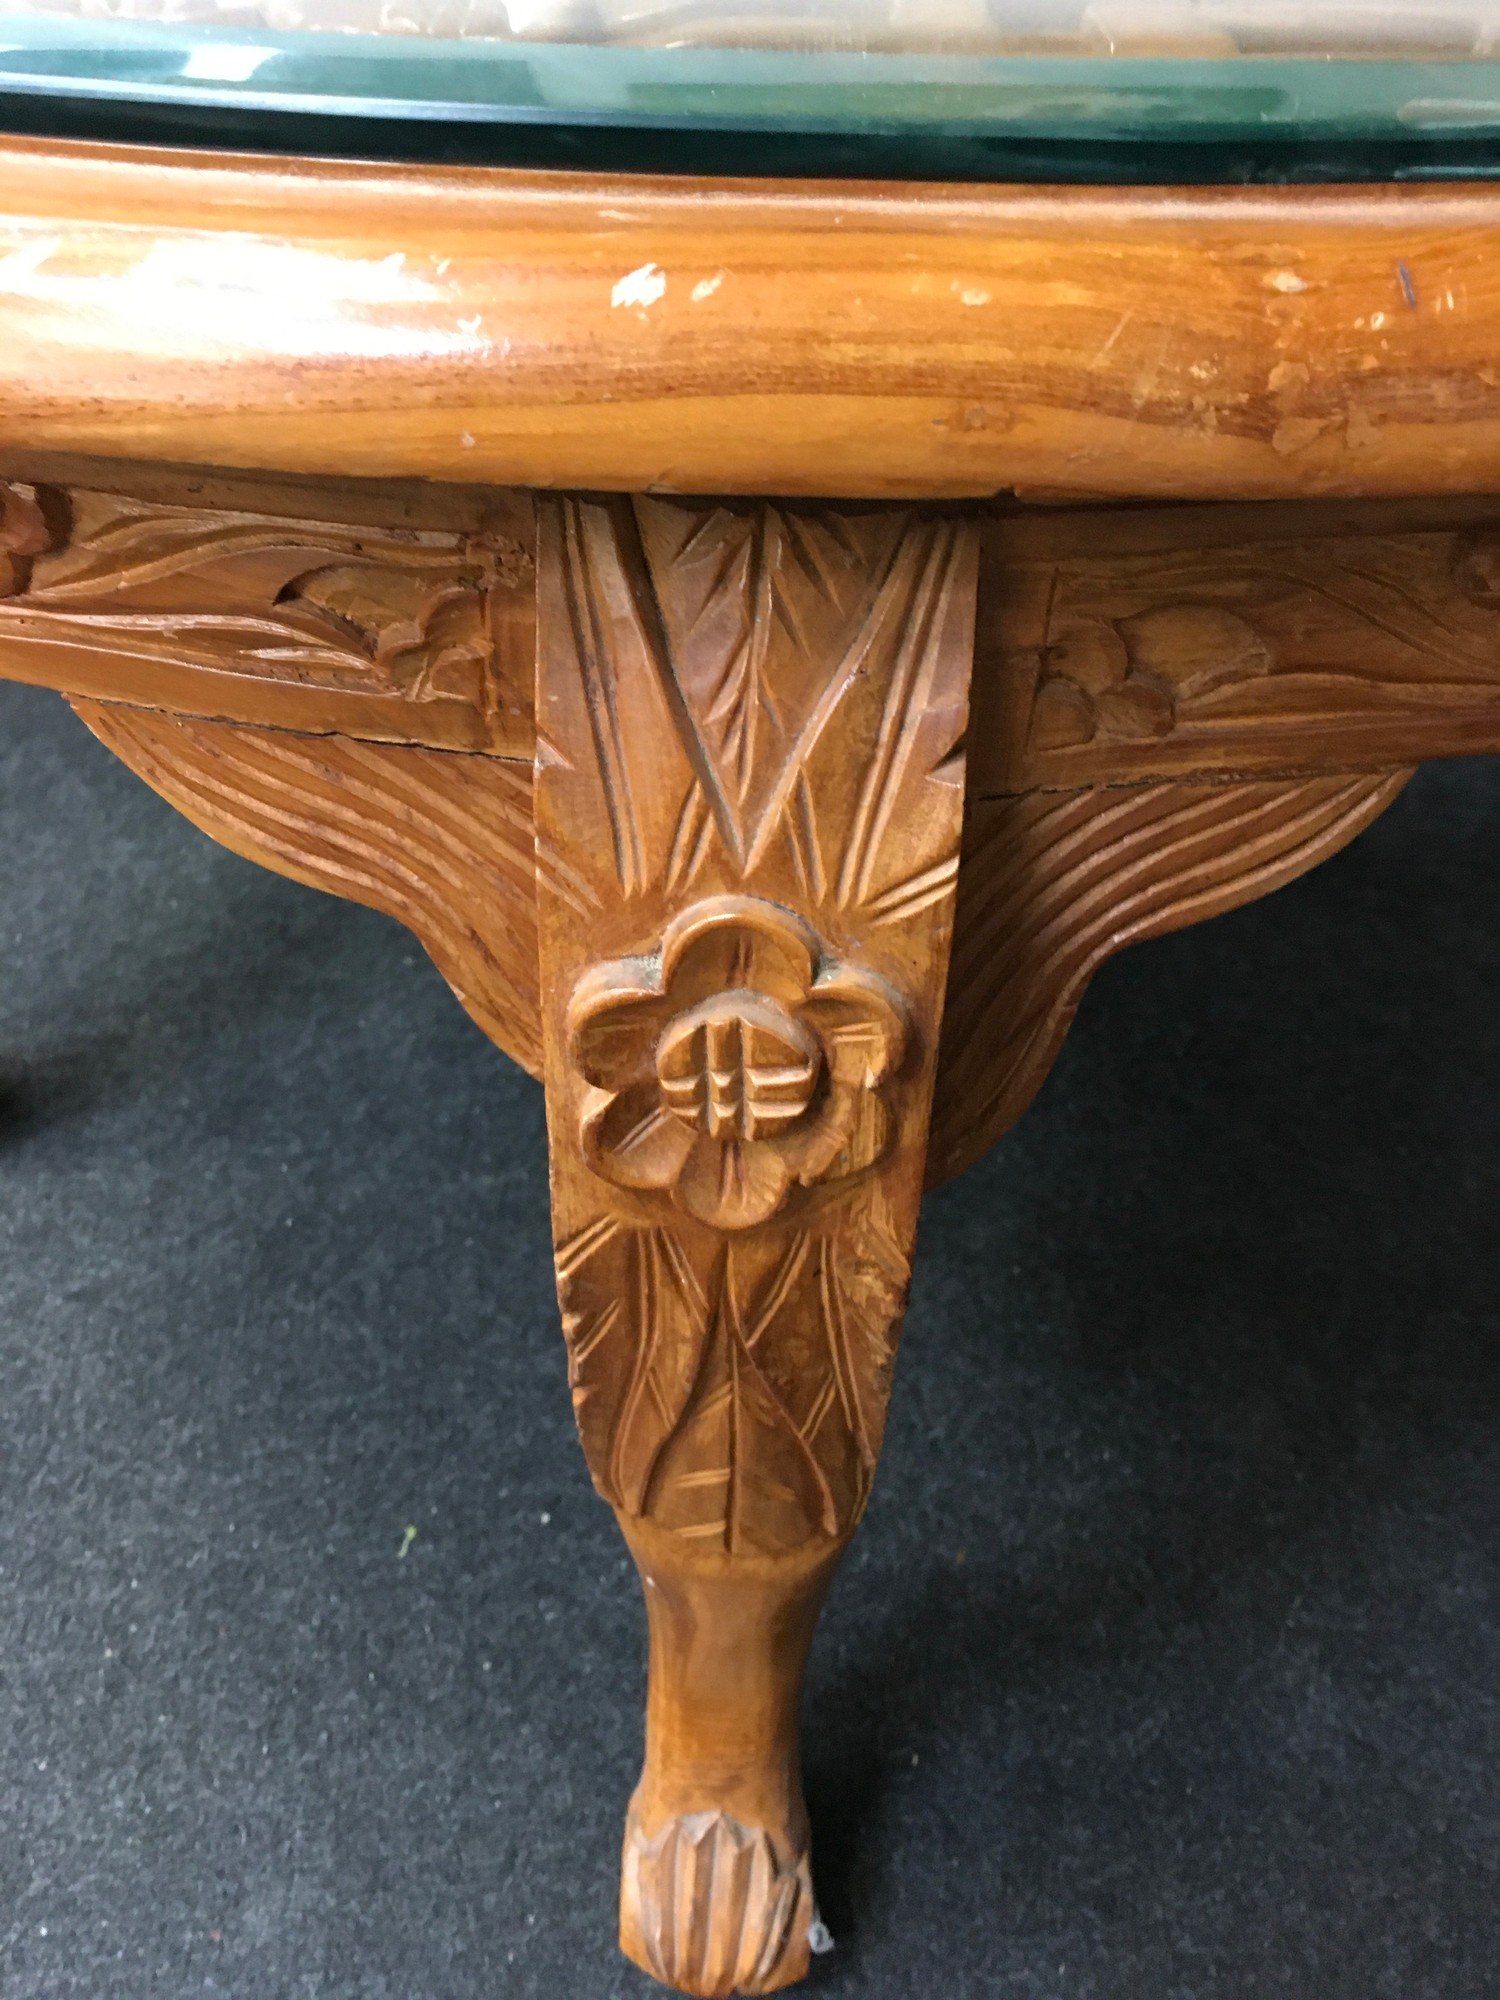 Carved hard wood Dragon table with 6 fitted stools to match all on cabriole legs 60x140x90cm - Image 6 of 6